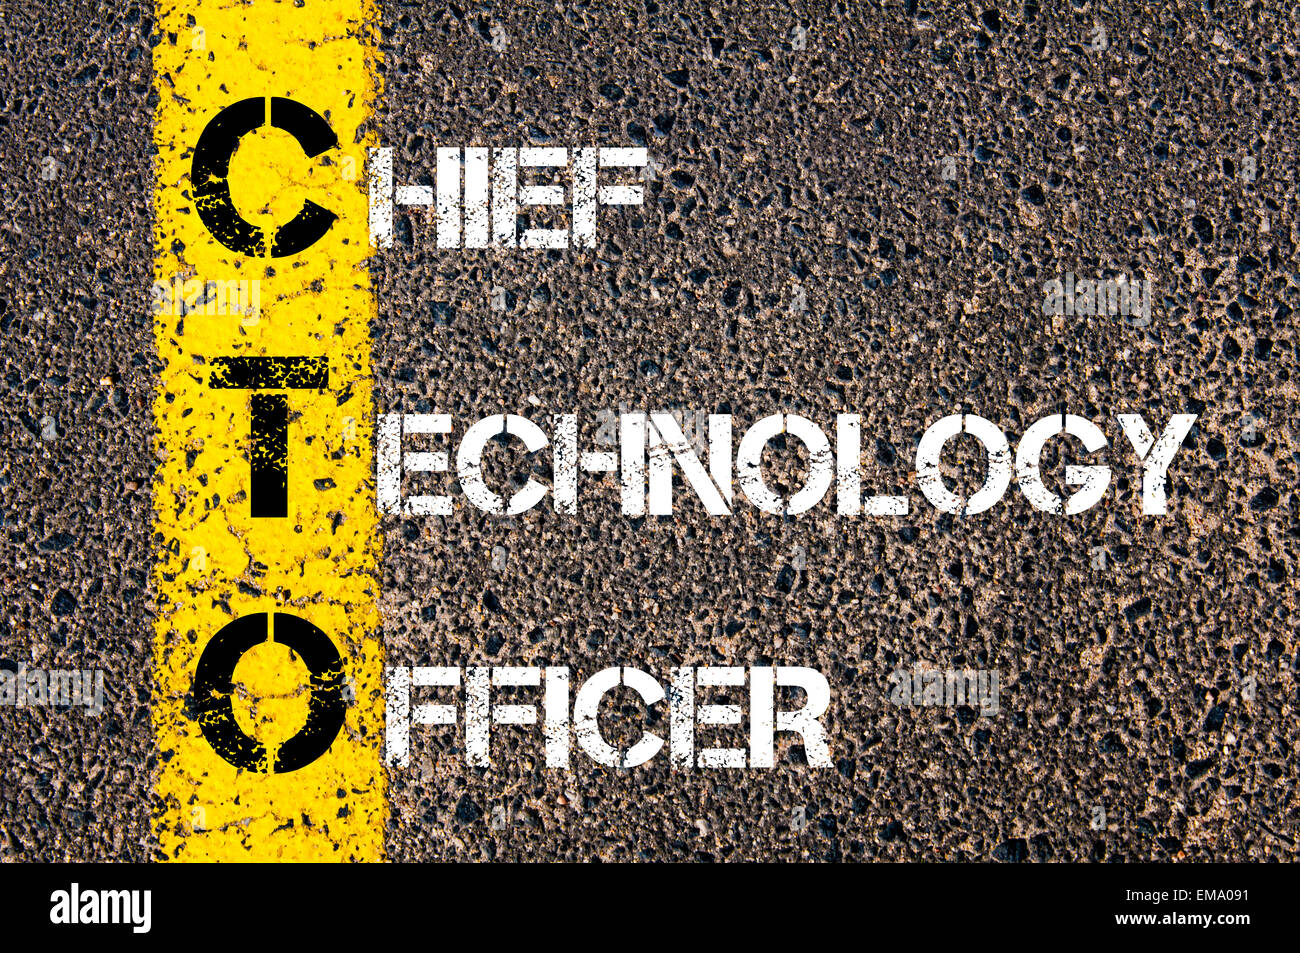 chief technology officer  Business Acronym CTO – Chief Technology Officer. Yellow paint line ...